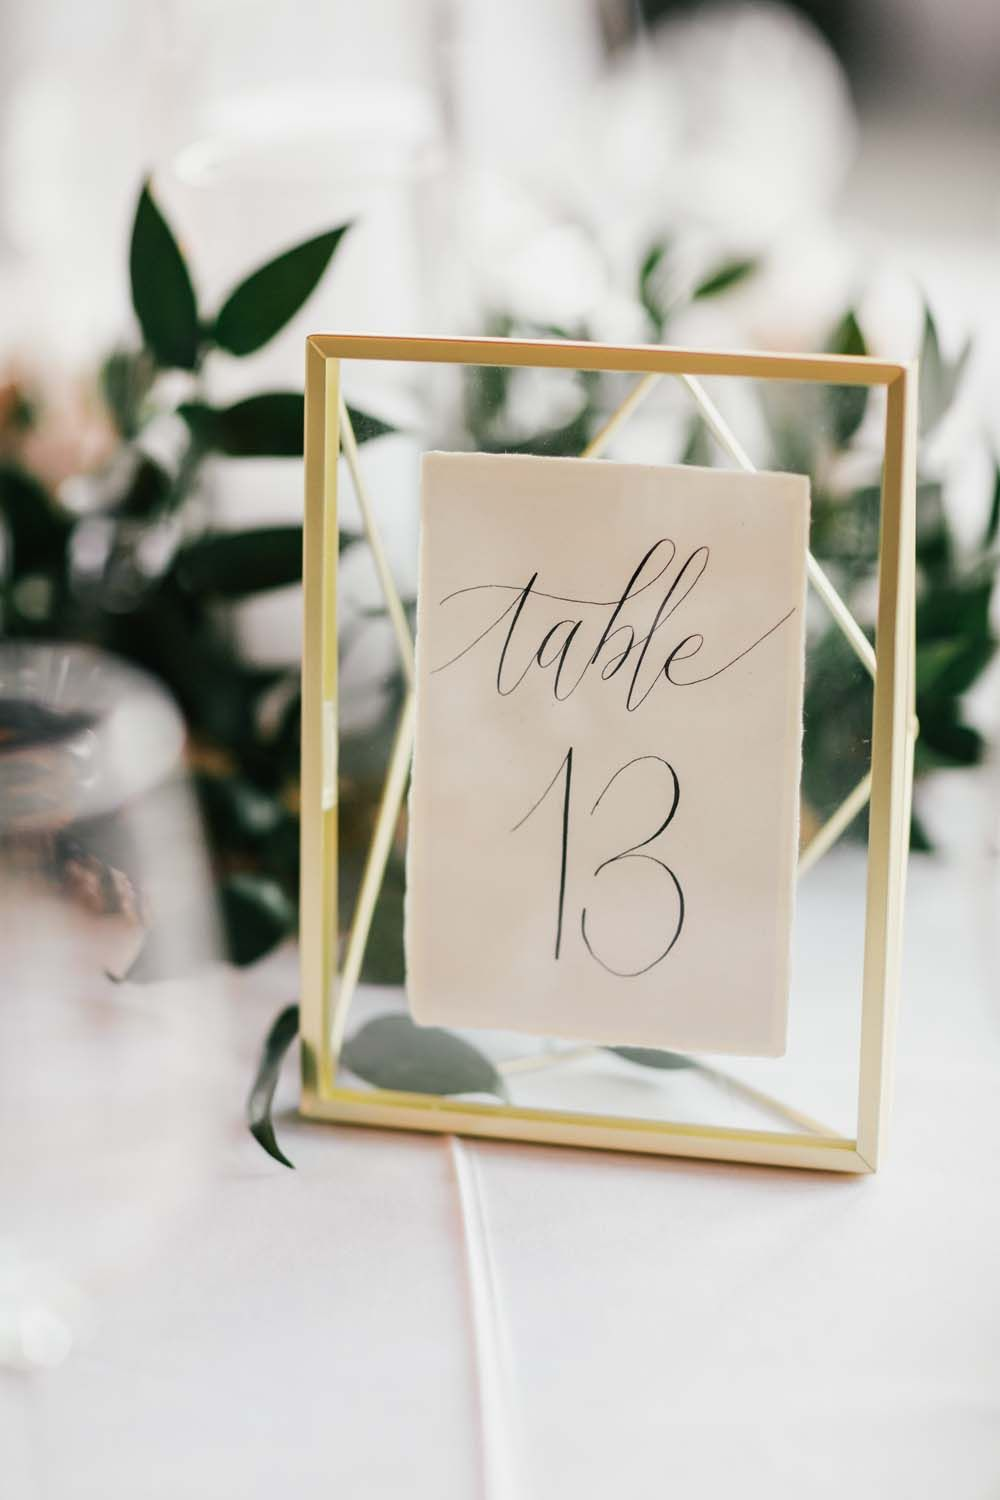 A Modern Wedding With Rustic Details | Minimalism, Calligraphy and ...